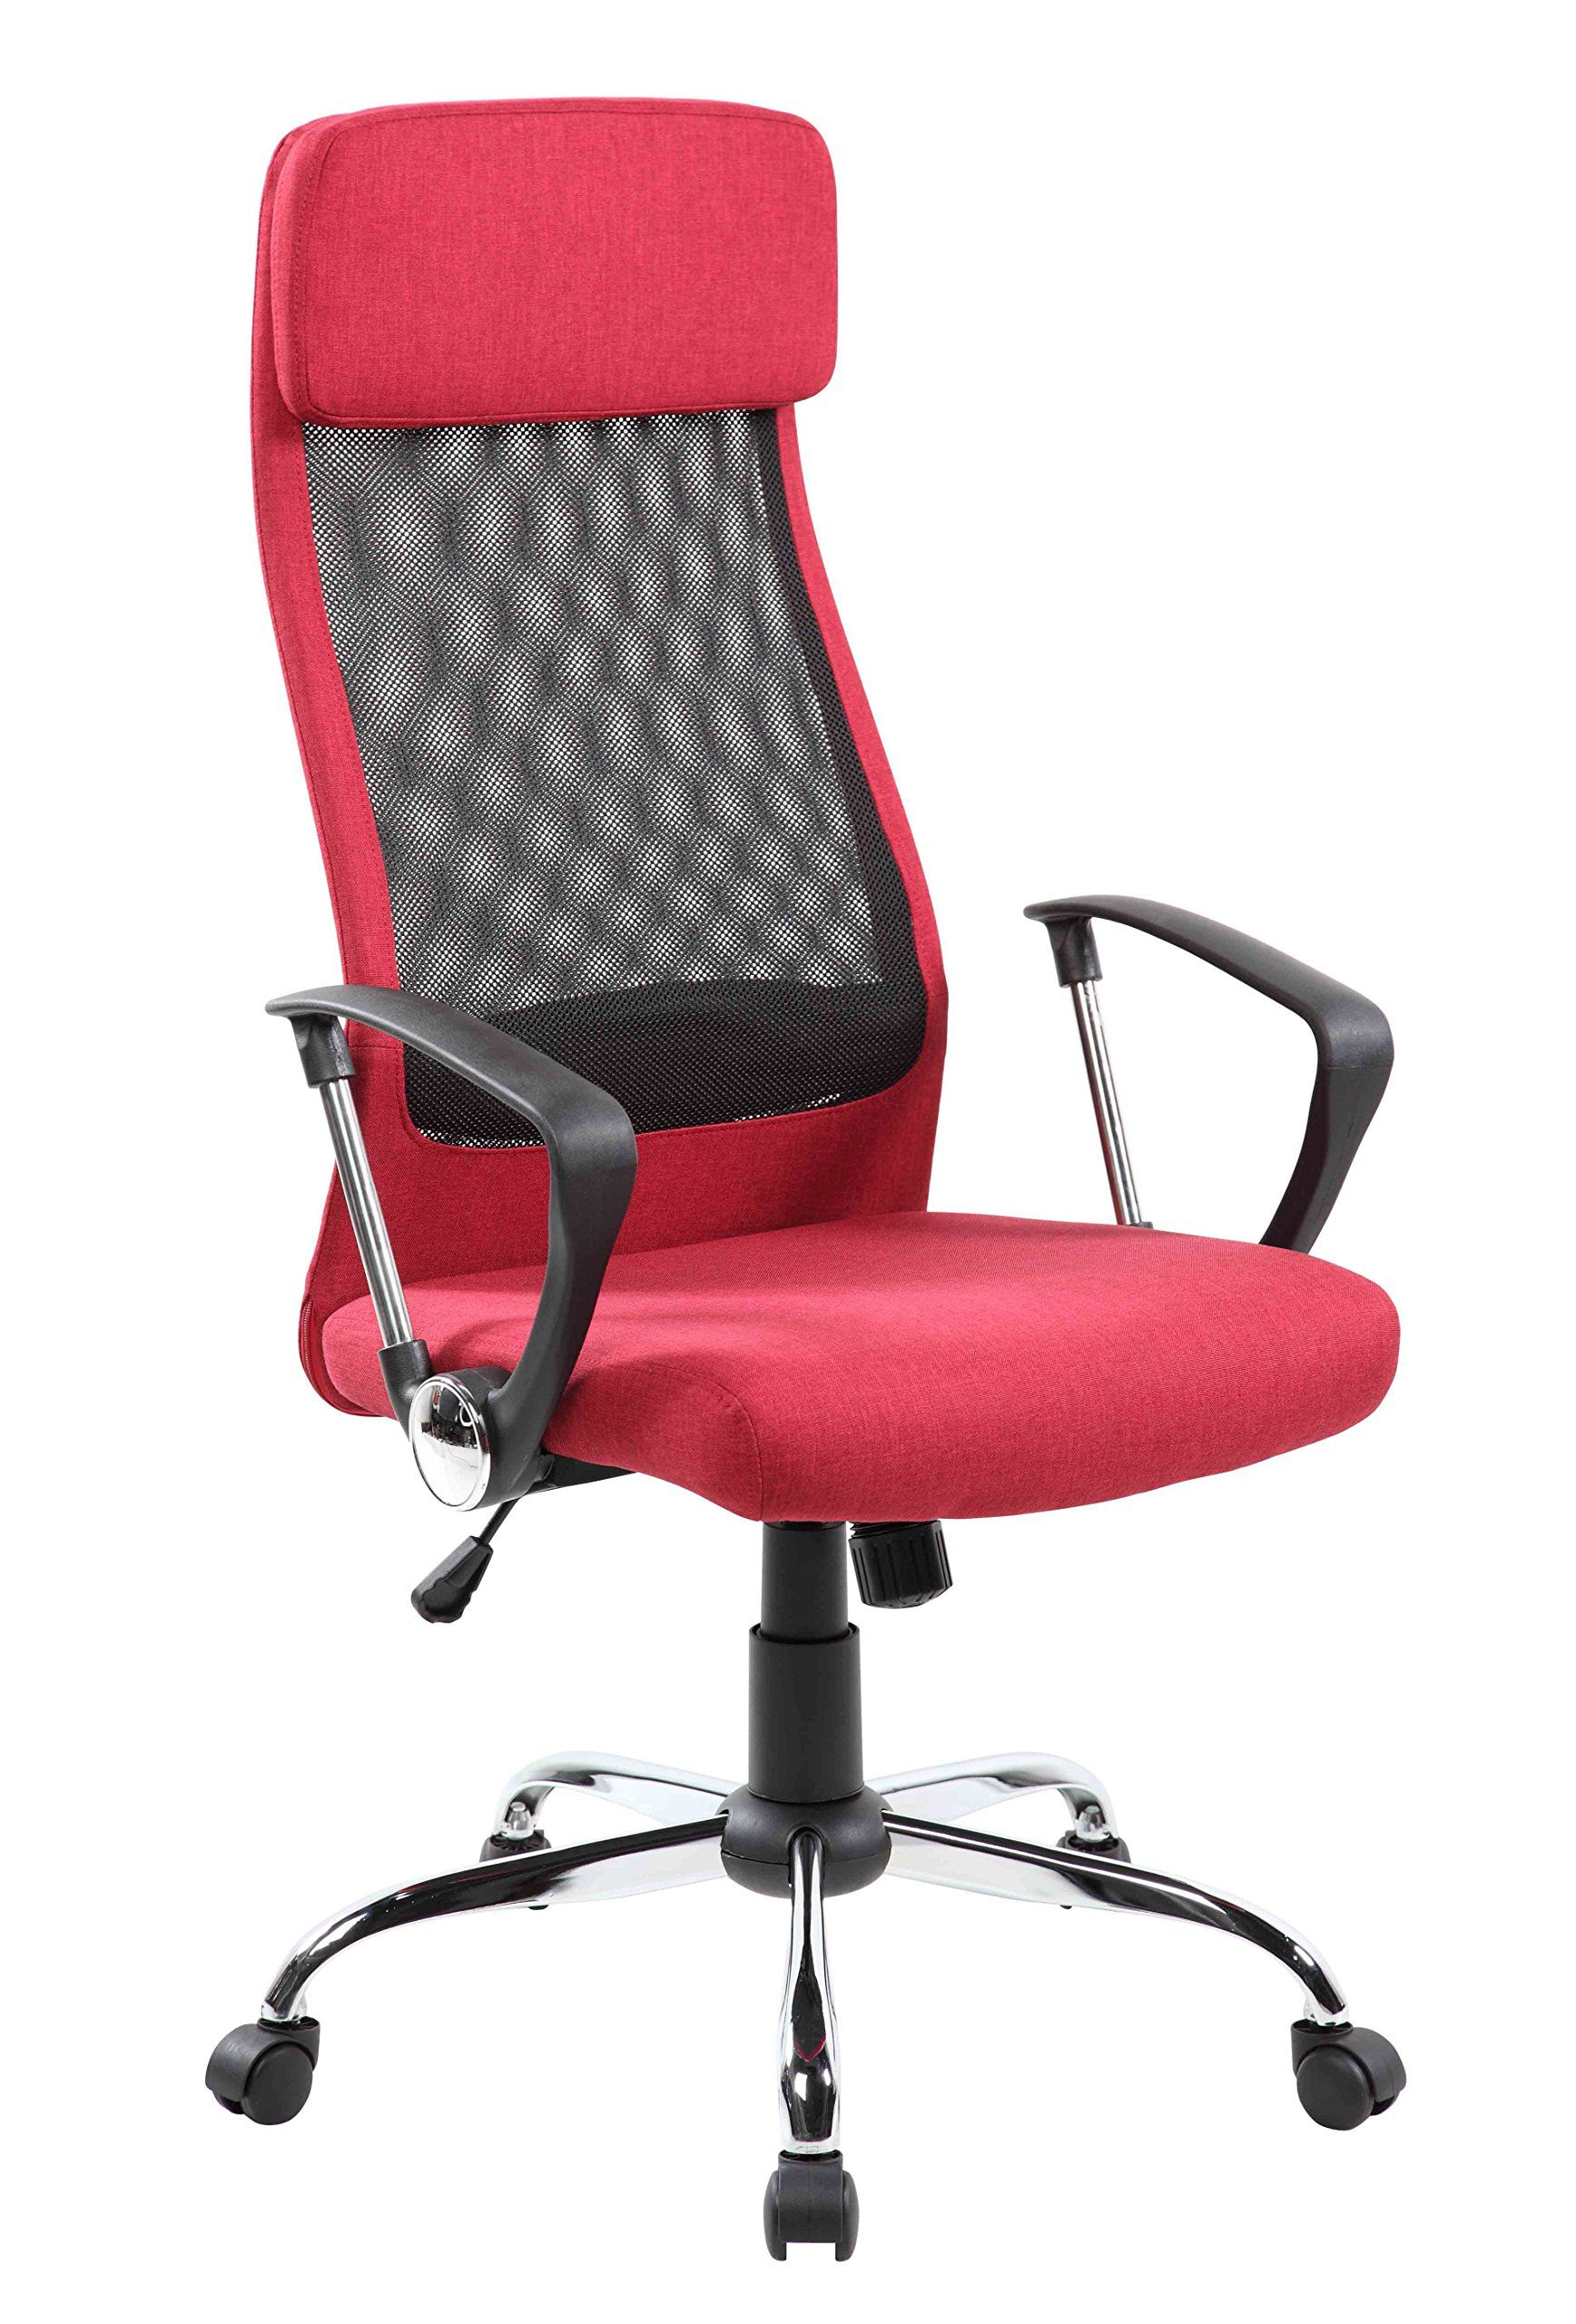 Office Chair Fabric Upholstery. Eurosports Mesh Chair Es 8045 Rd High Back  And